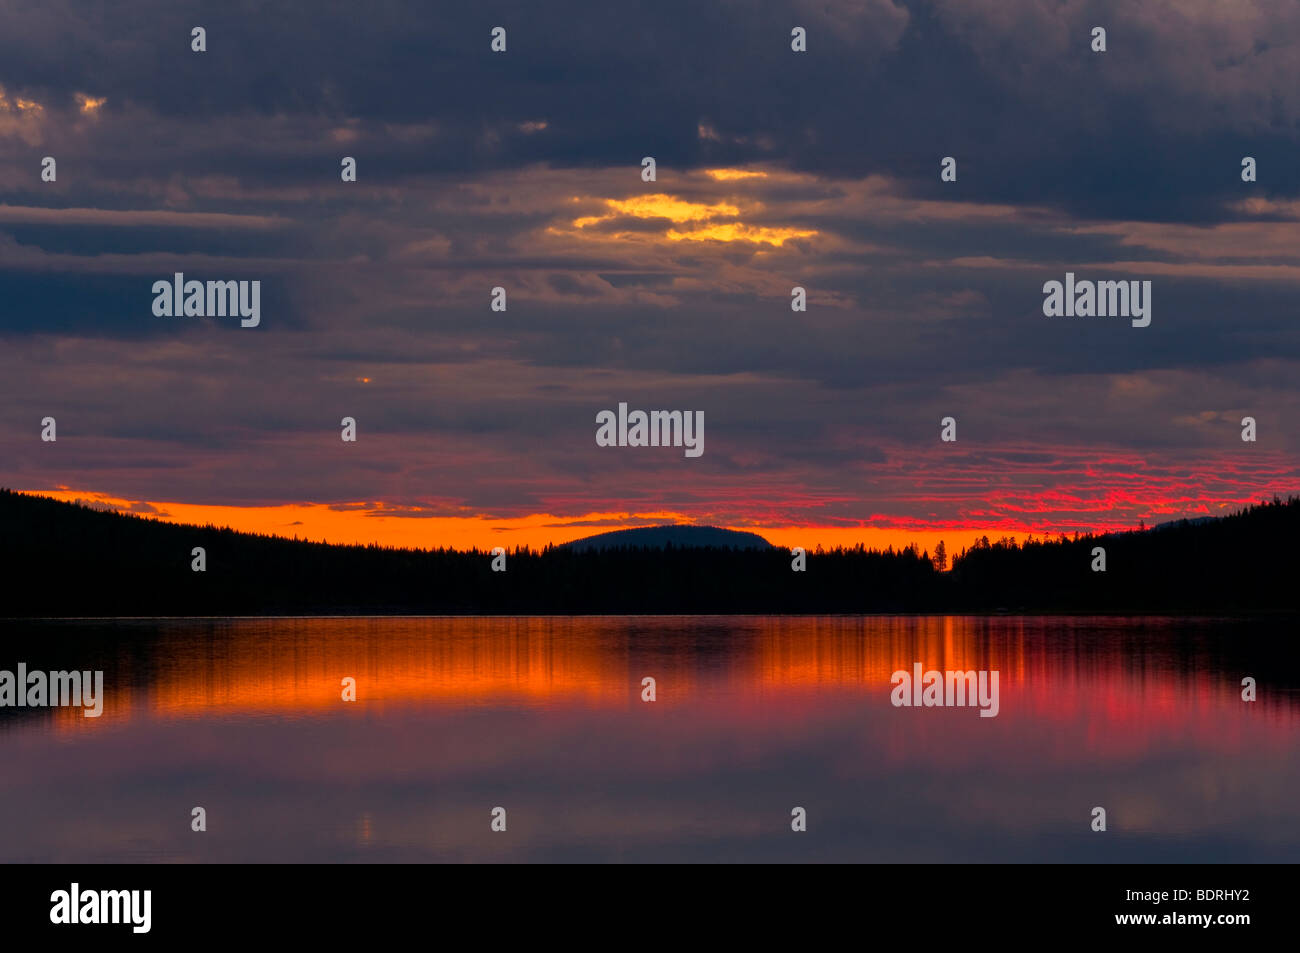 abendstimmung an einem see bei arjeplog, lappland, schweden, evening mood at lake near arjeplog, lapland, sweden Stock Photo